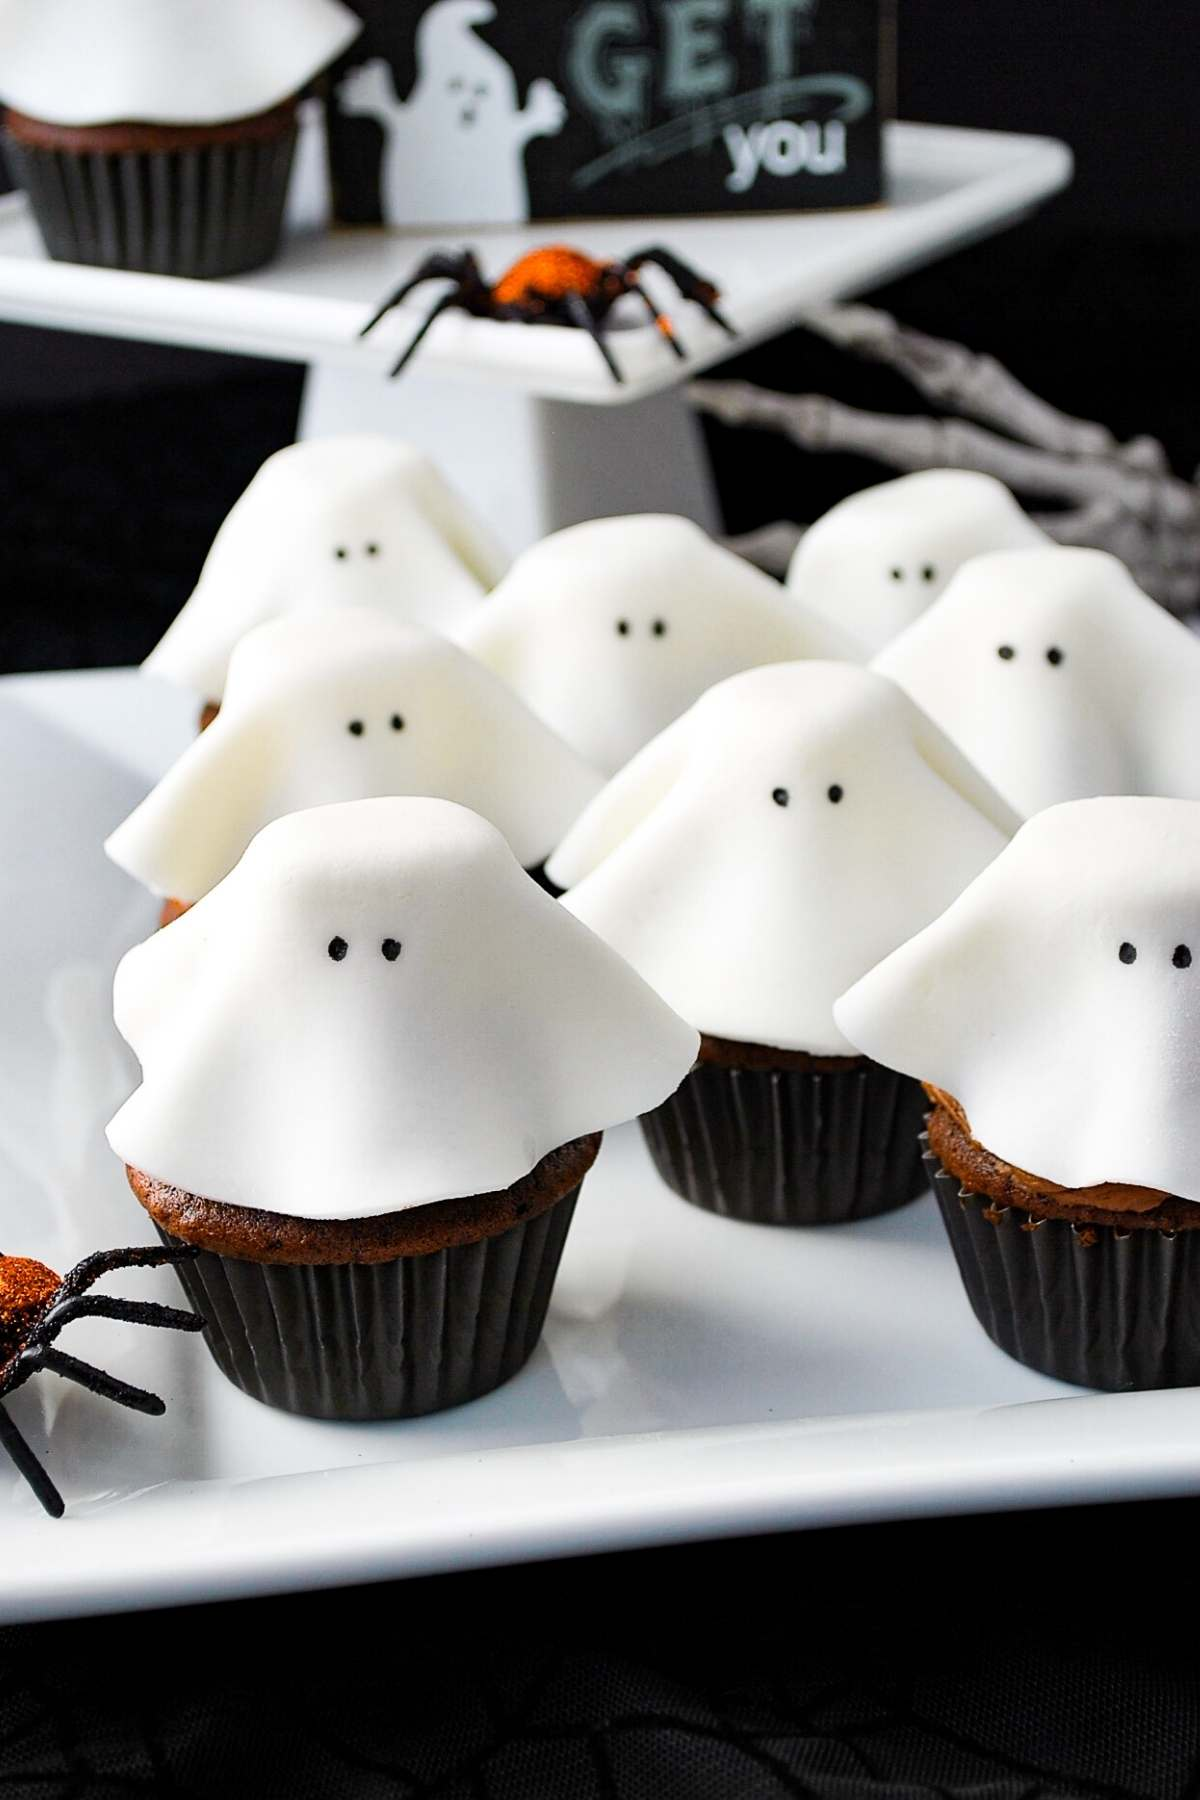 fondant ghost cupcakes on a white platter with plastic spiders